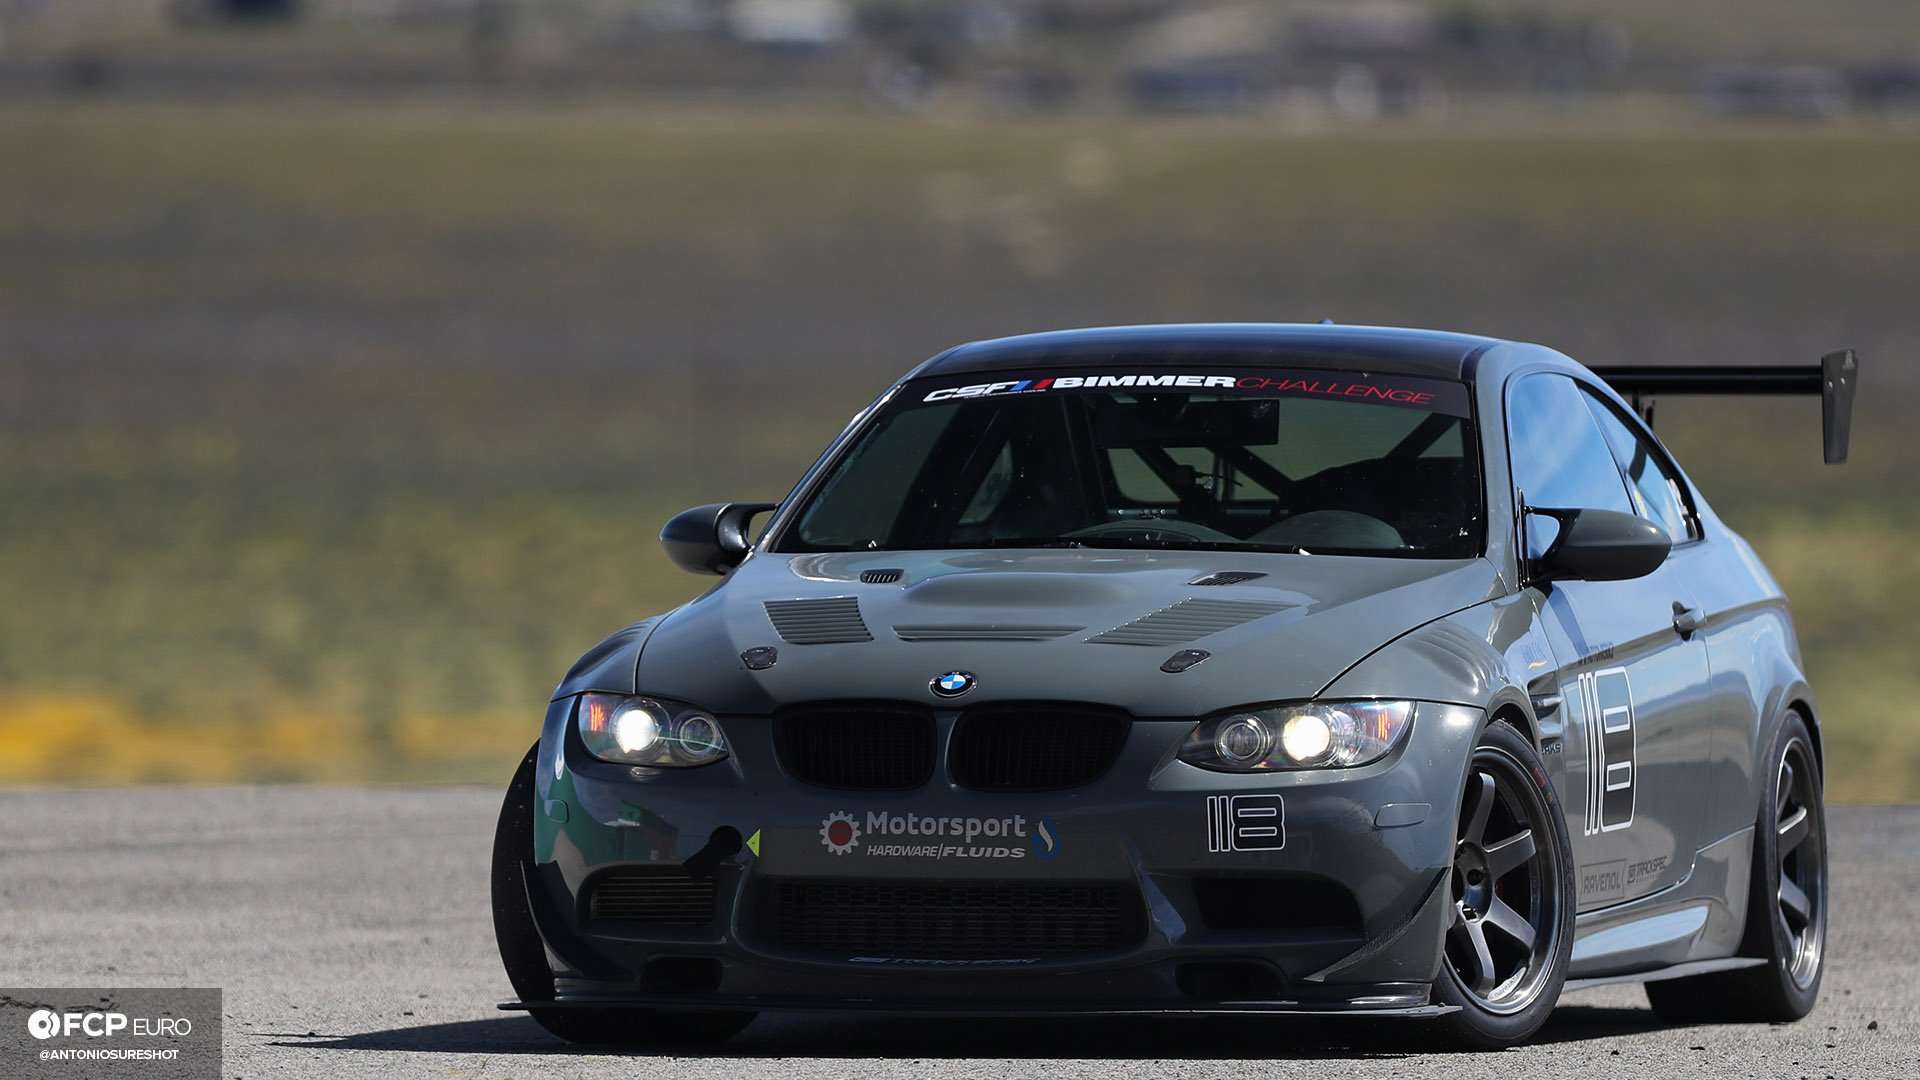 Passion for Design and Performance - BMW E92 M3